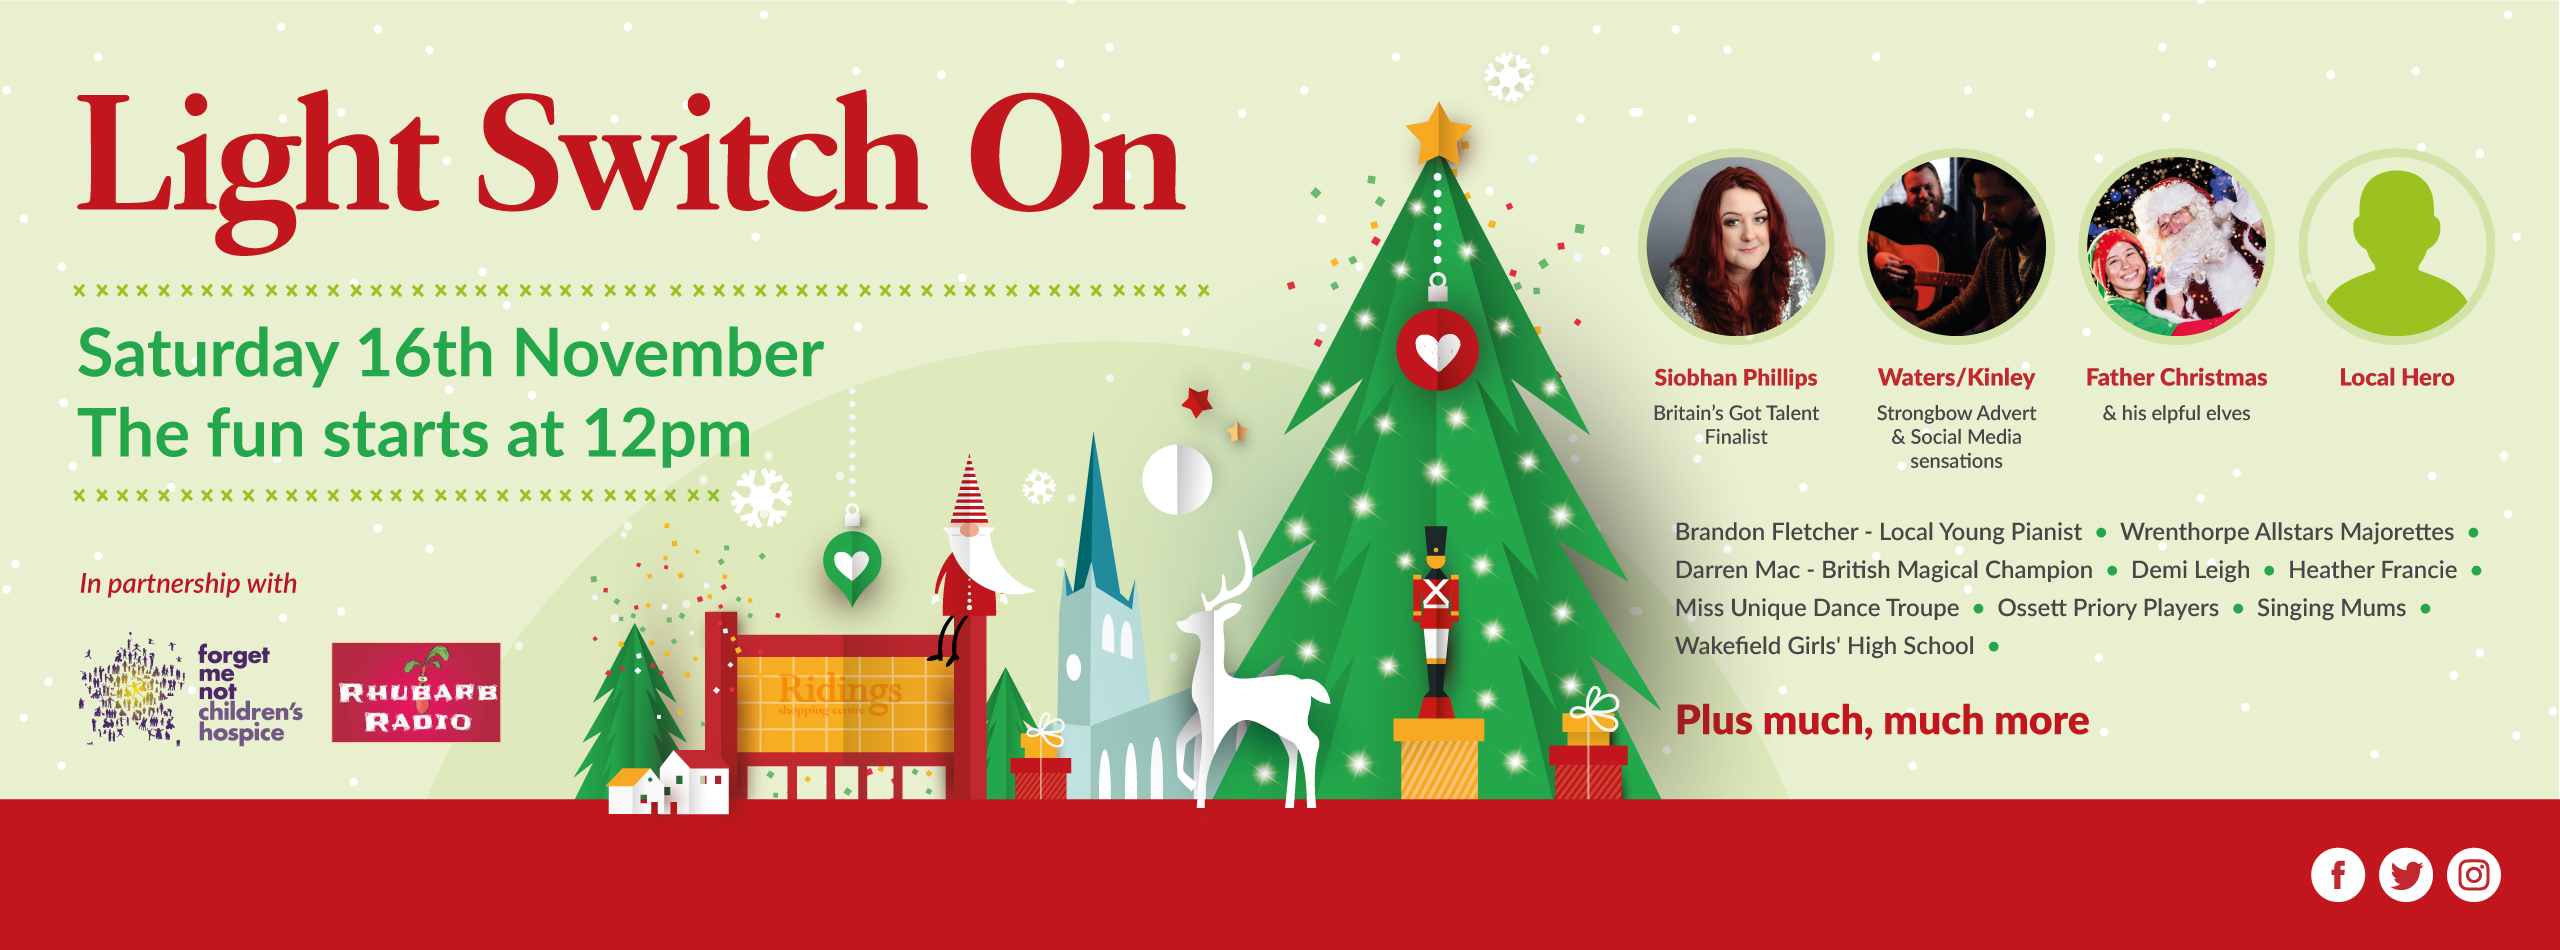 The-Ridings_Light-Switch-On_Web-Banner